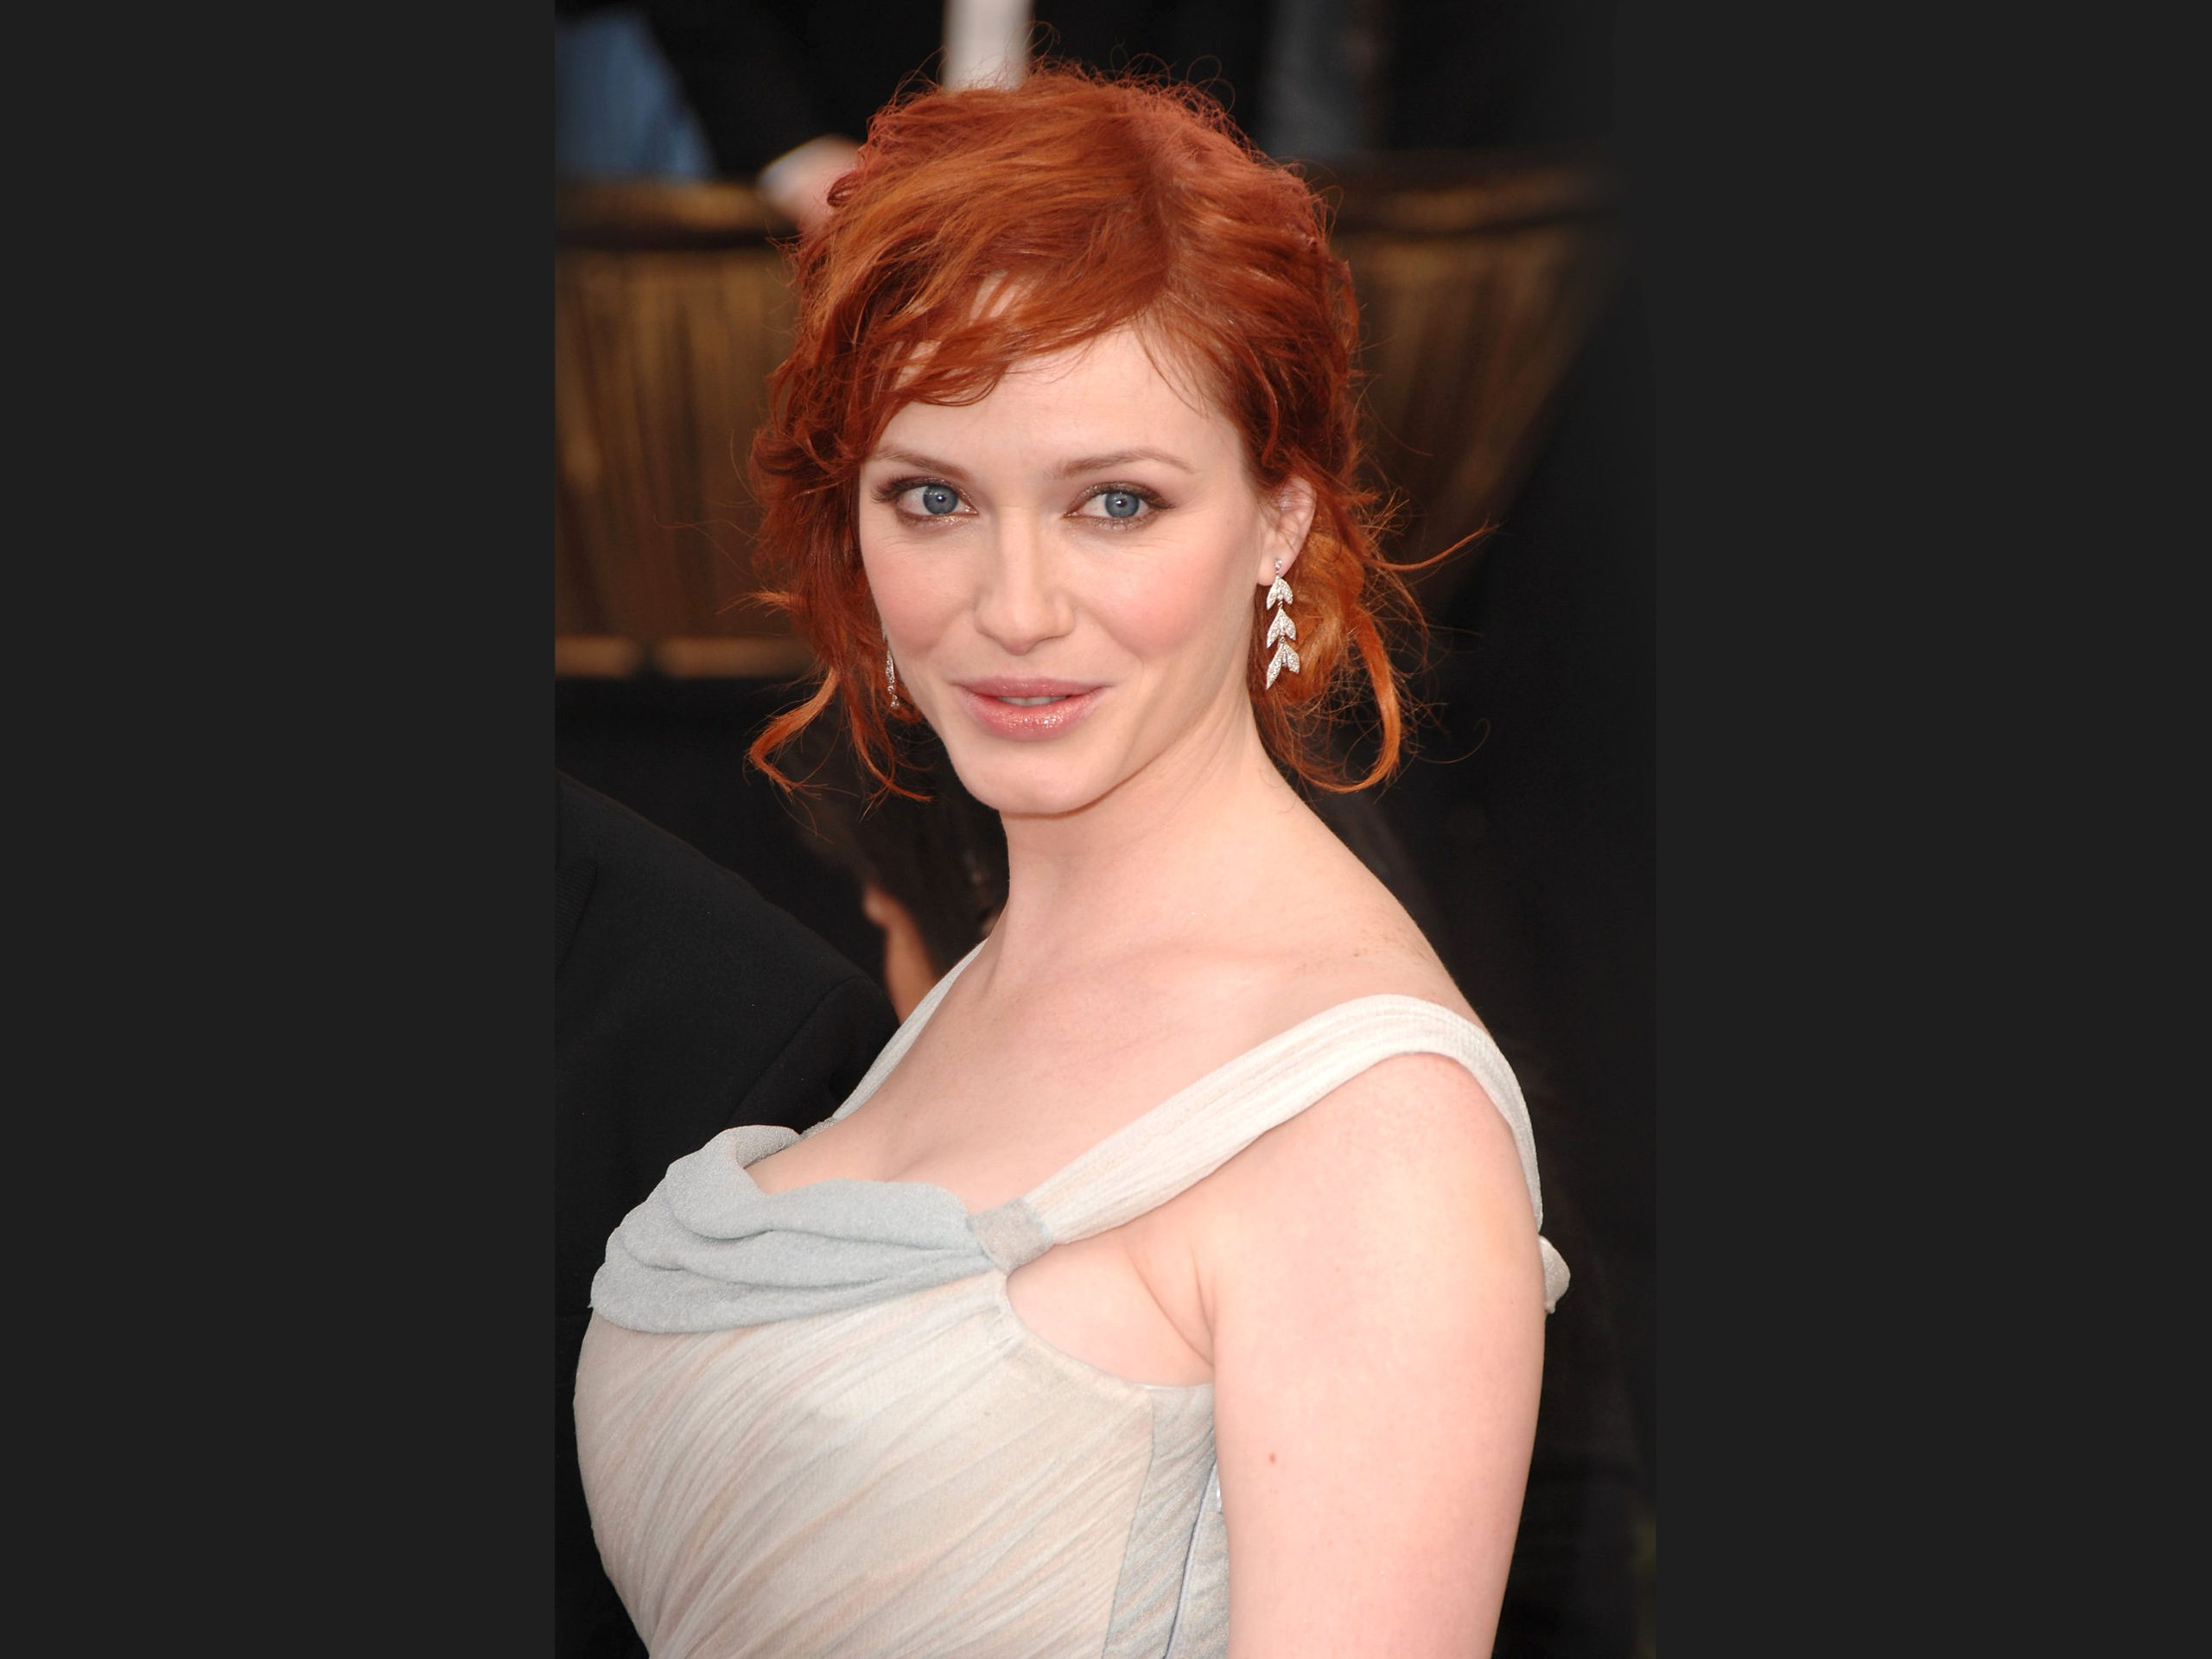 Christina Hendricks HD Wallpapers for desktop download 2560x1920